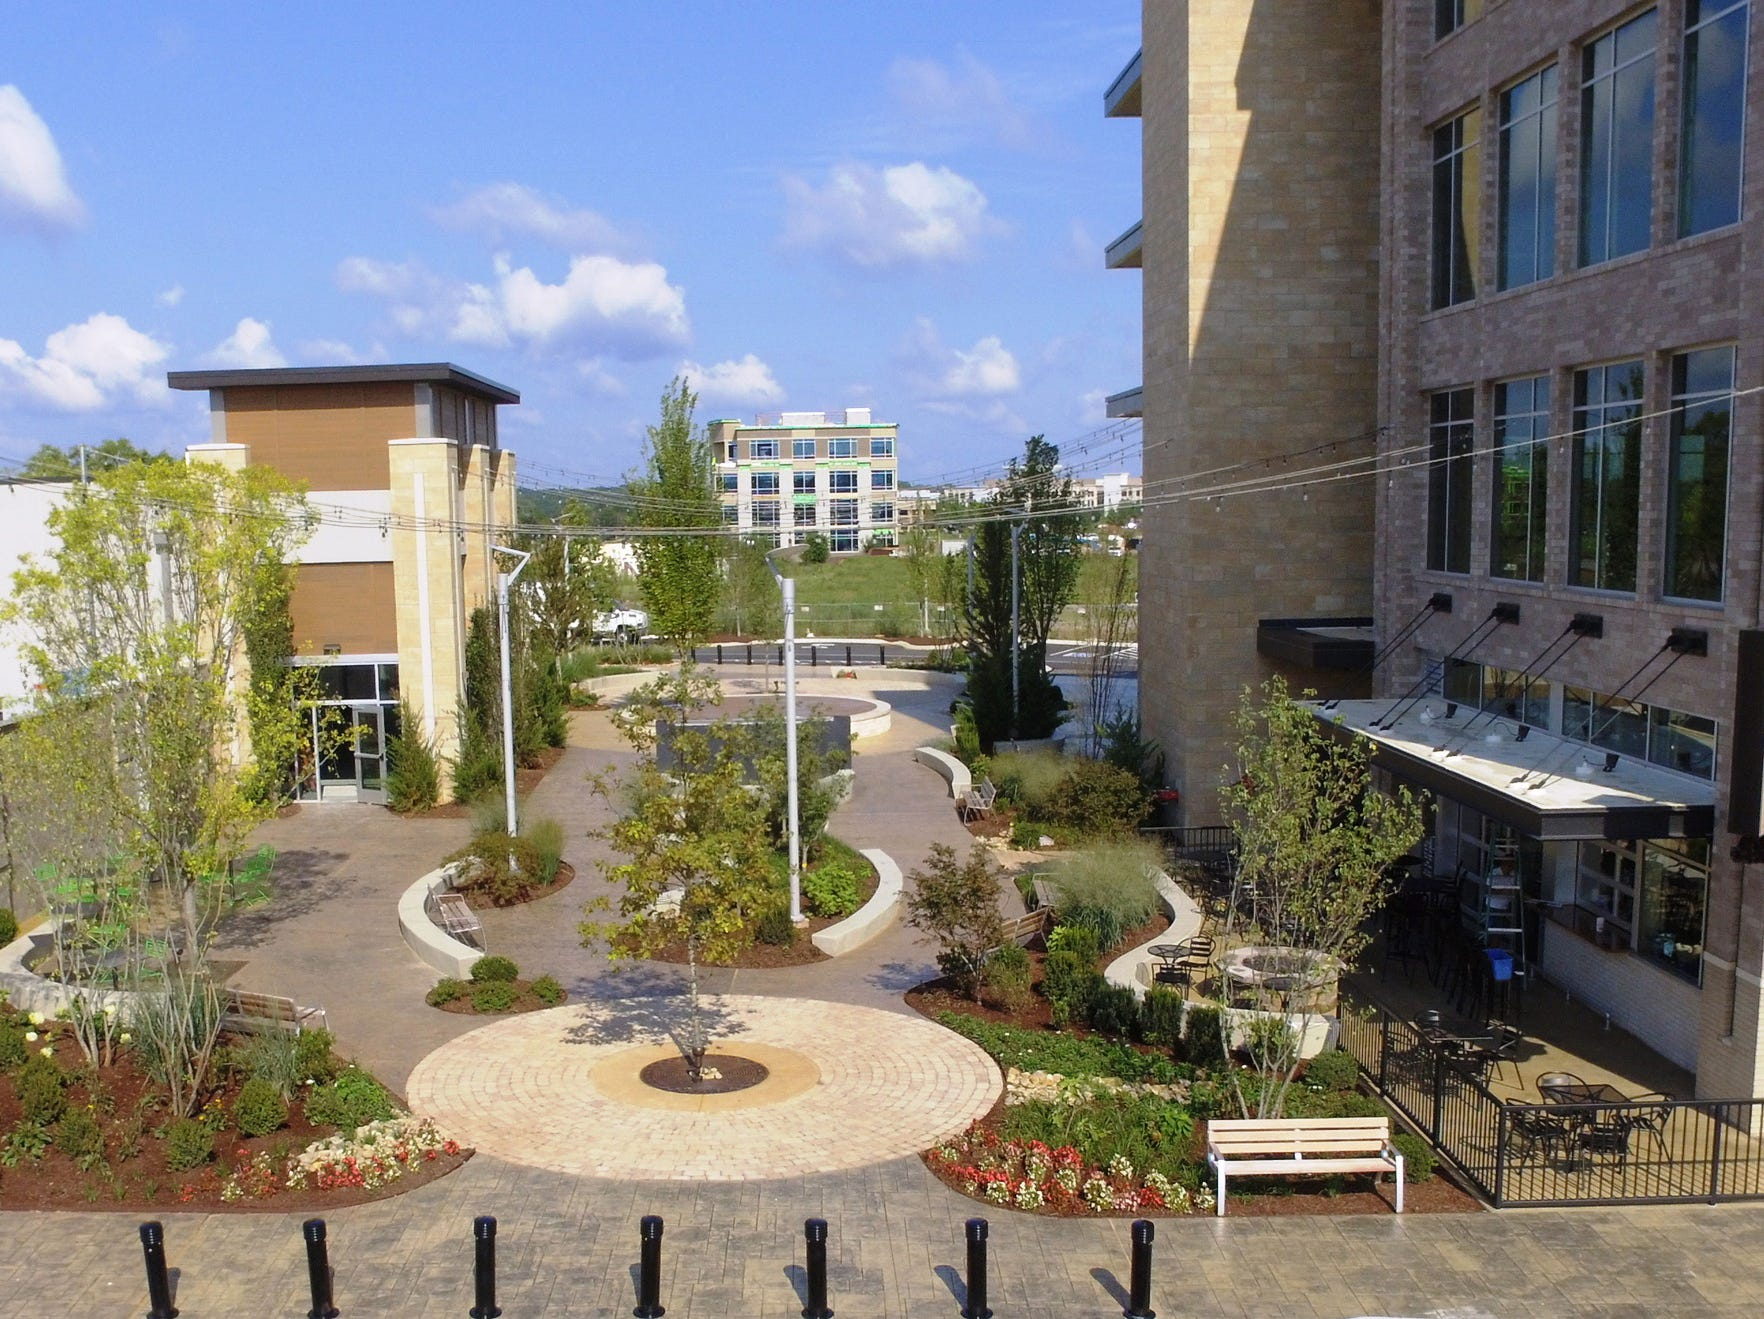 Steakhouse Five, a new restaurant from chef Mitchell Murphree, will be located in the heart of Fountains at Gateway, overlooking the small park in the center of the campus at 1500 Medical Center Parkway in Murfreesboro.